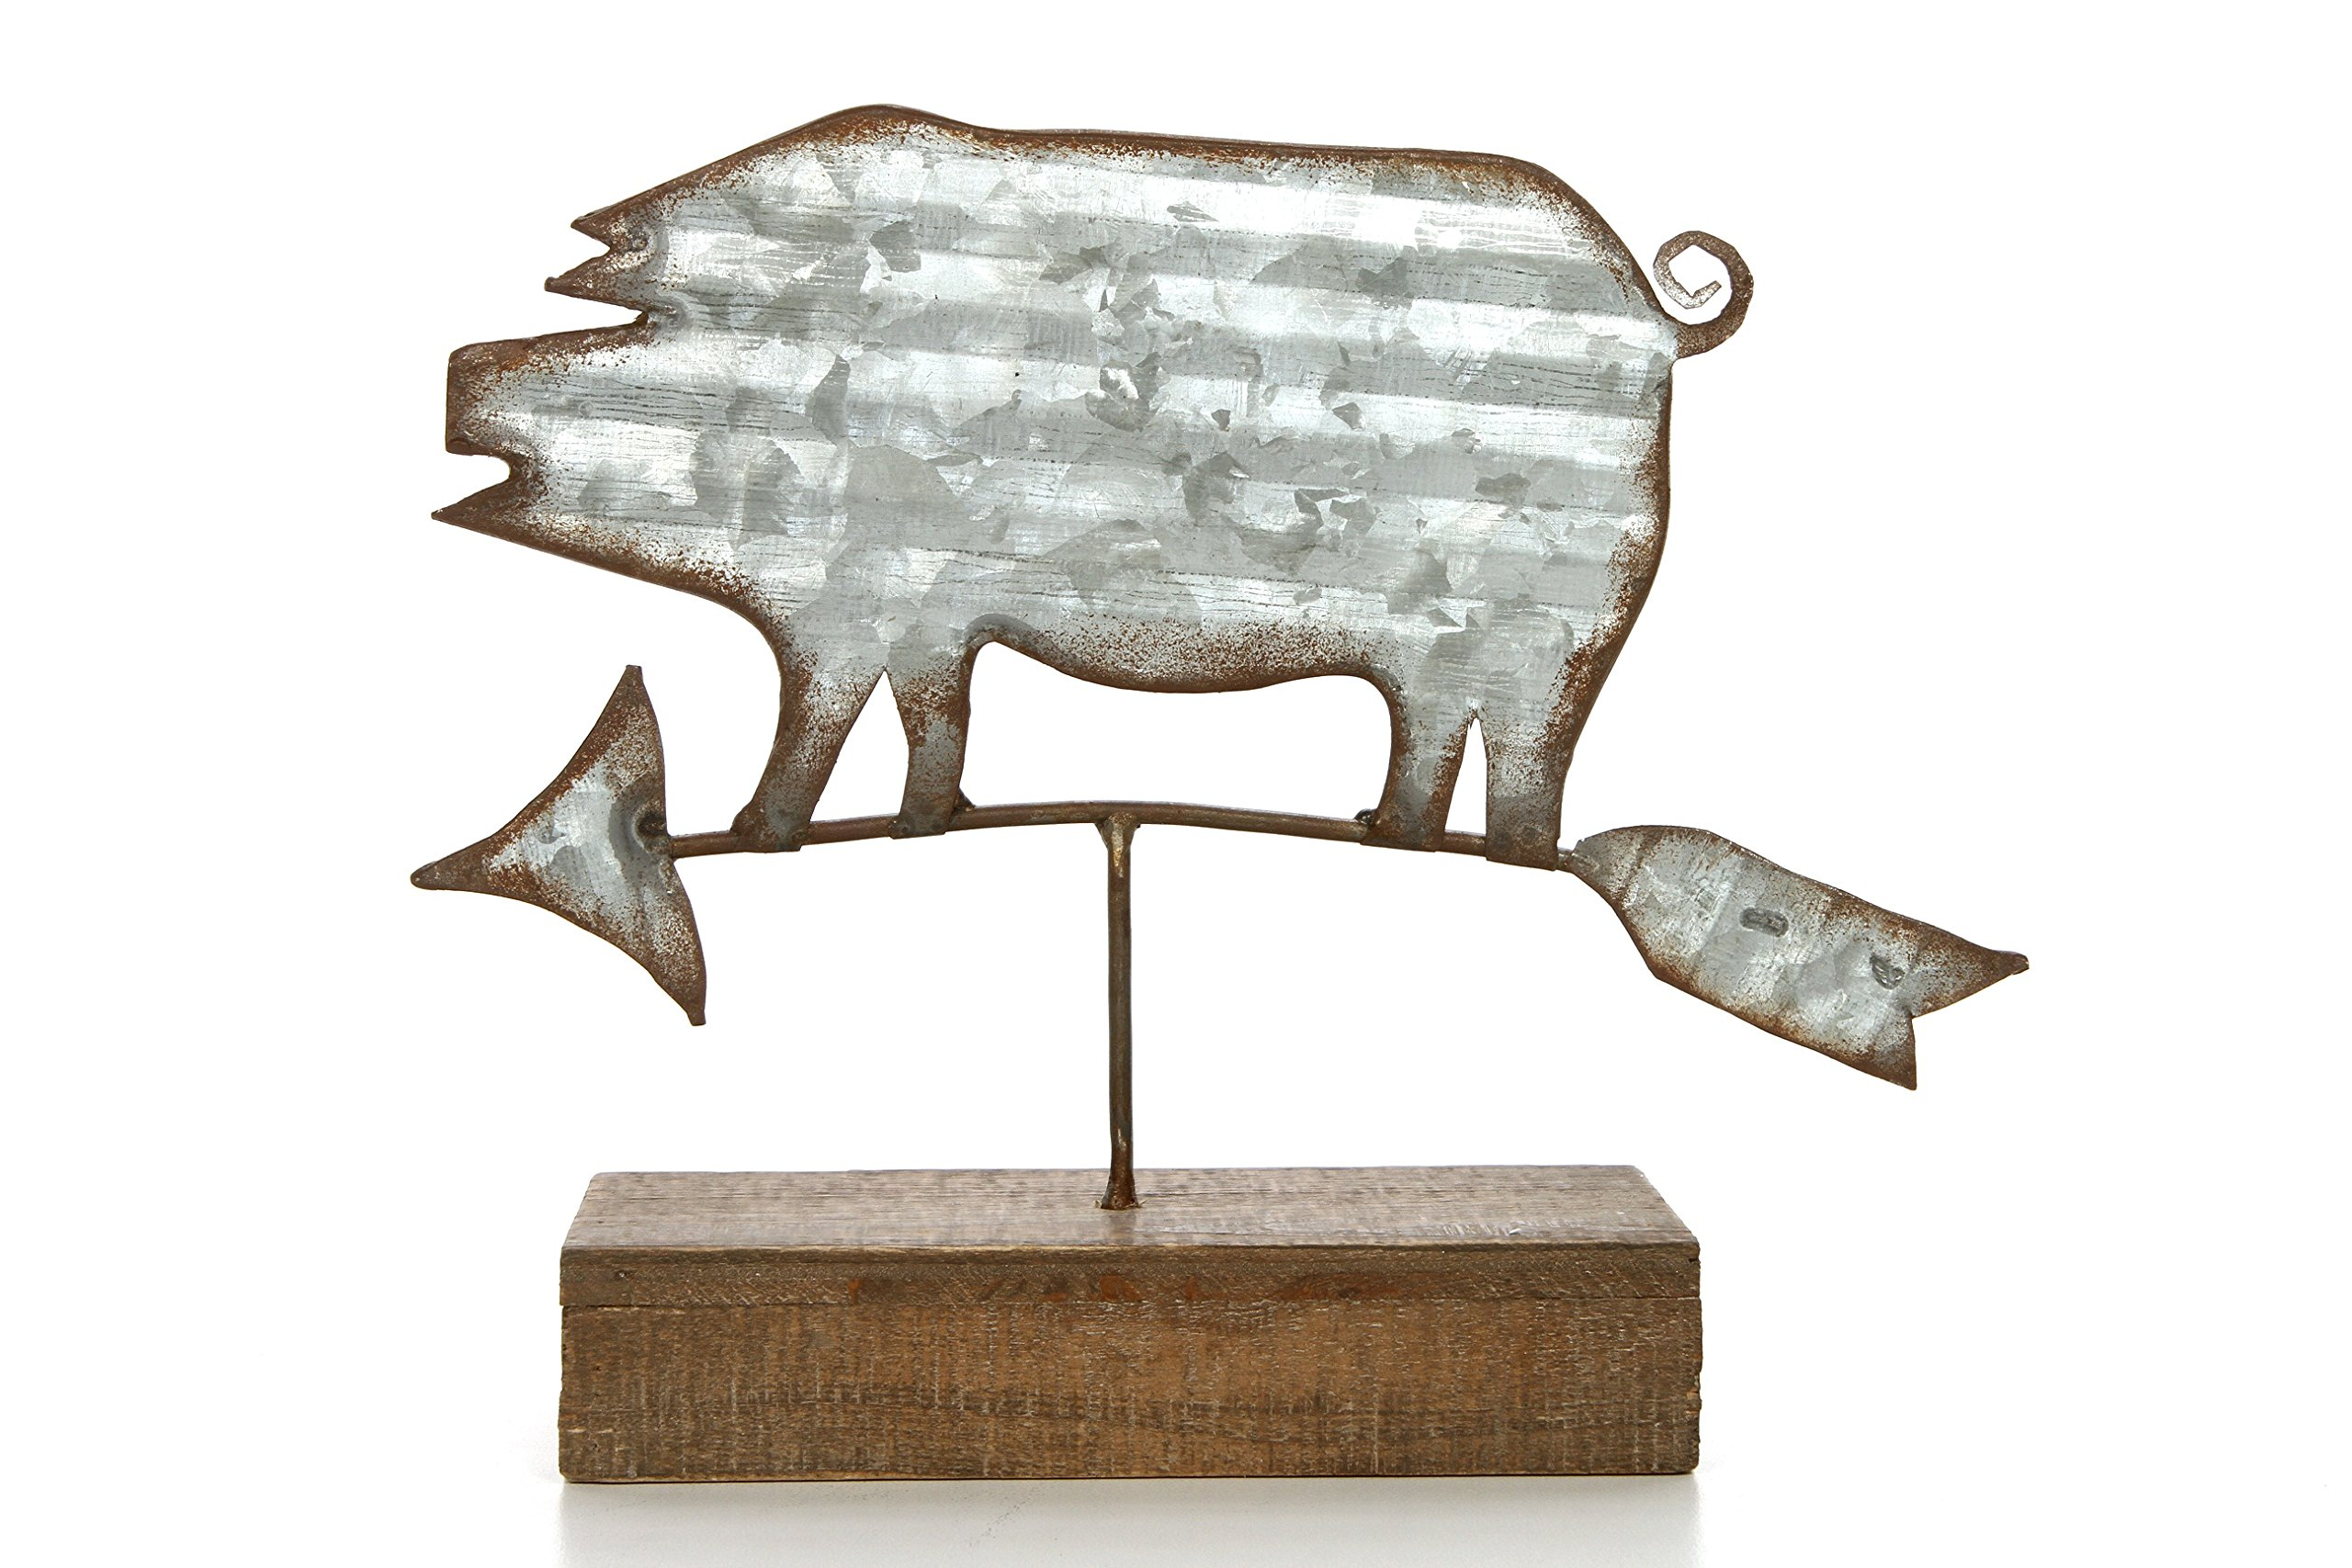 Hosley 7.5'' High, Decorative Tabletop Pig Weather Vein. Ideal Gift for Wedding, Home, Party Favor, Spa, Reiki, Meditation, Bathroom Settings. O9